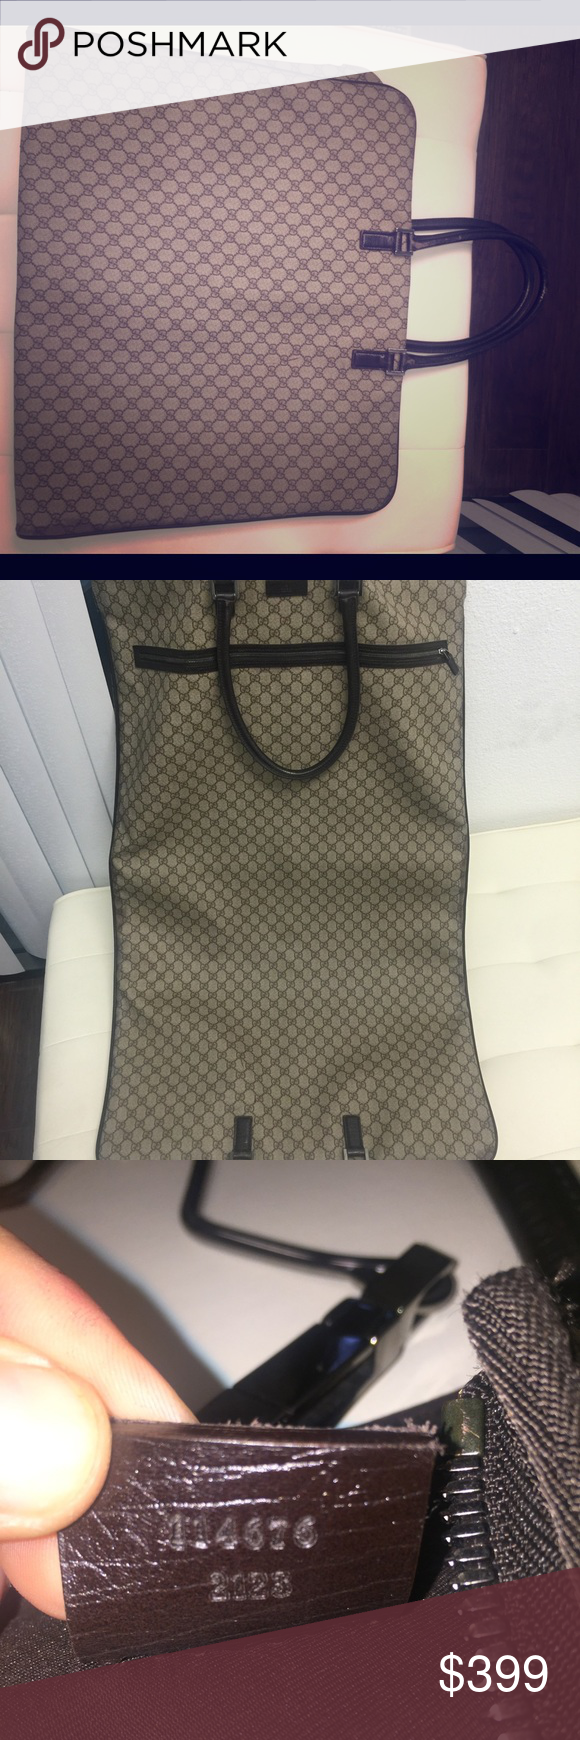 Gucci Garmet Bag Leather Beautiful, slightly worn great looking Gucci Garmet bag. Timeless piece, must have for any jet setting lady! Gucci Bags Travel Bags